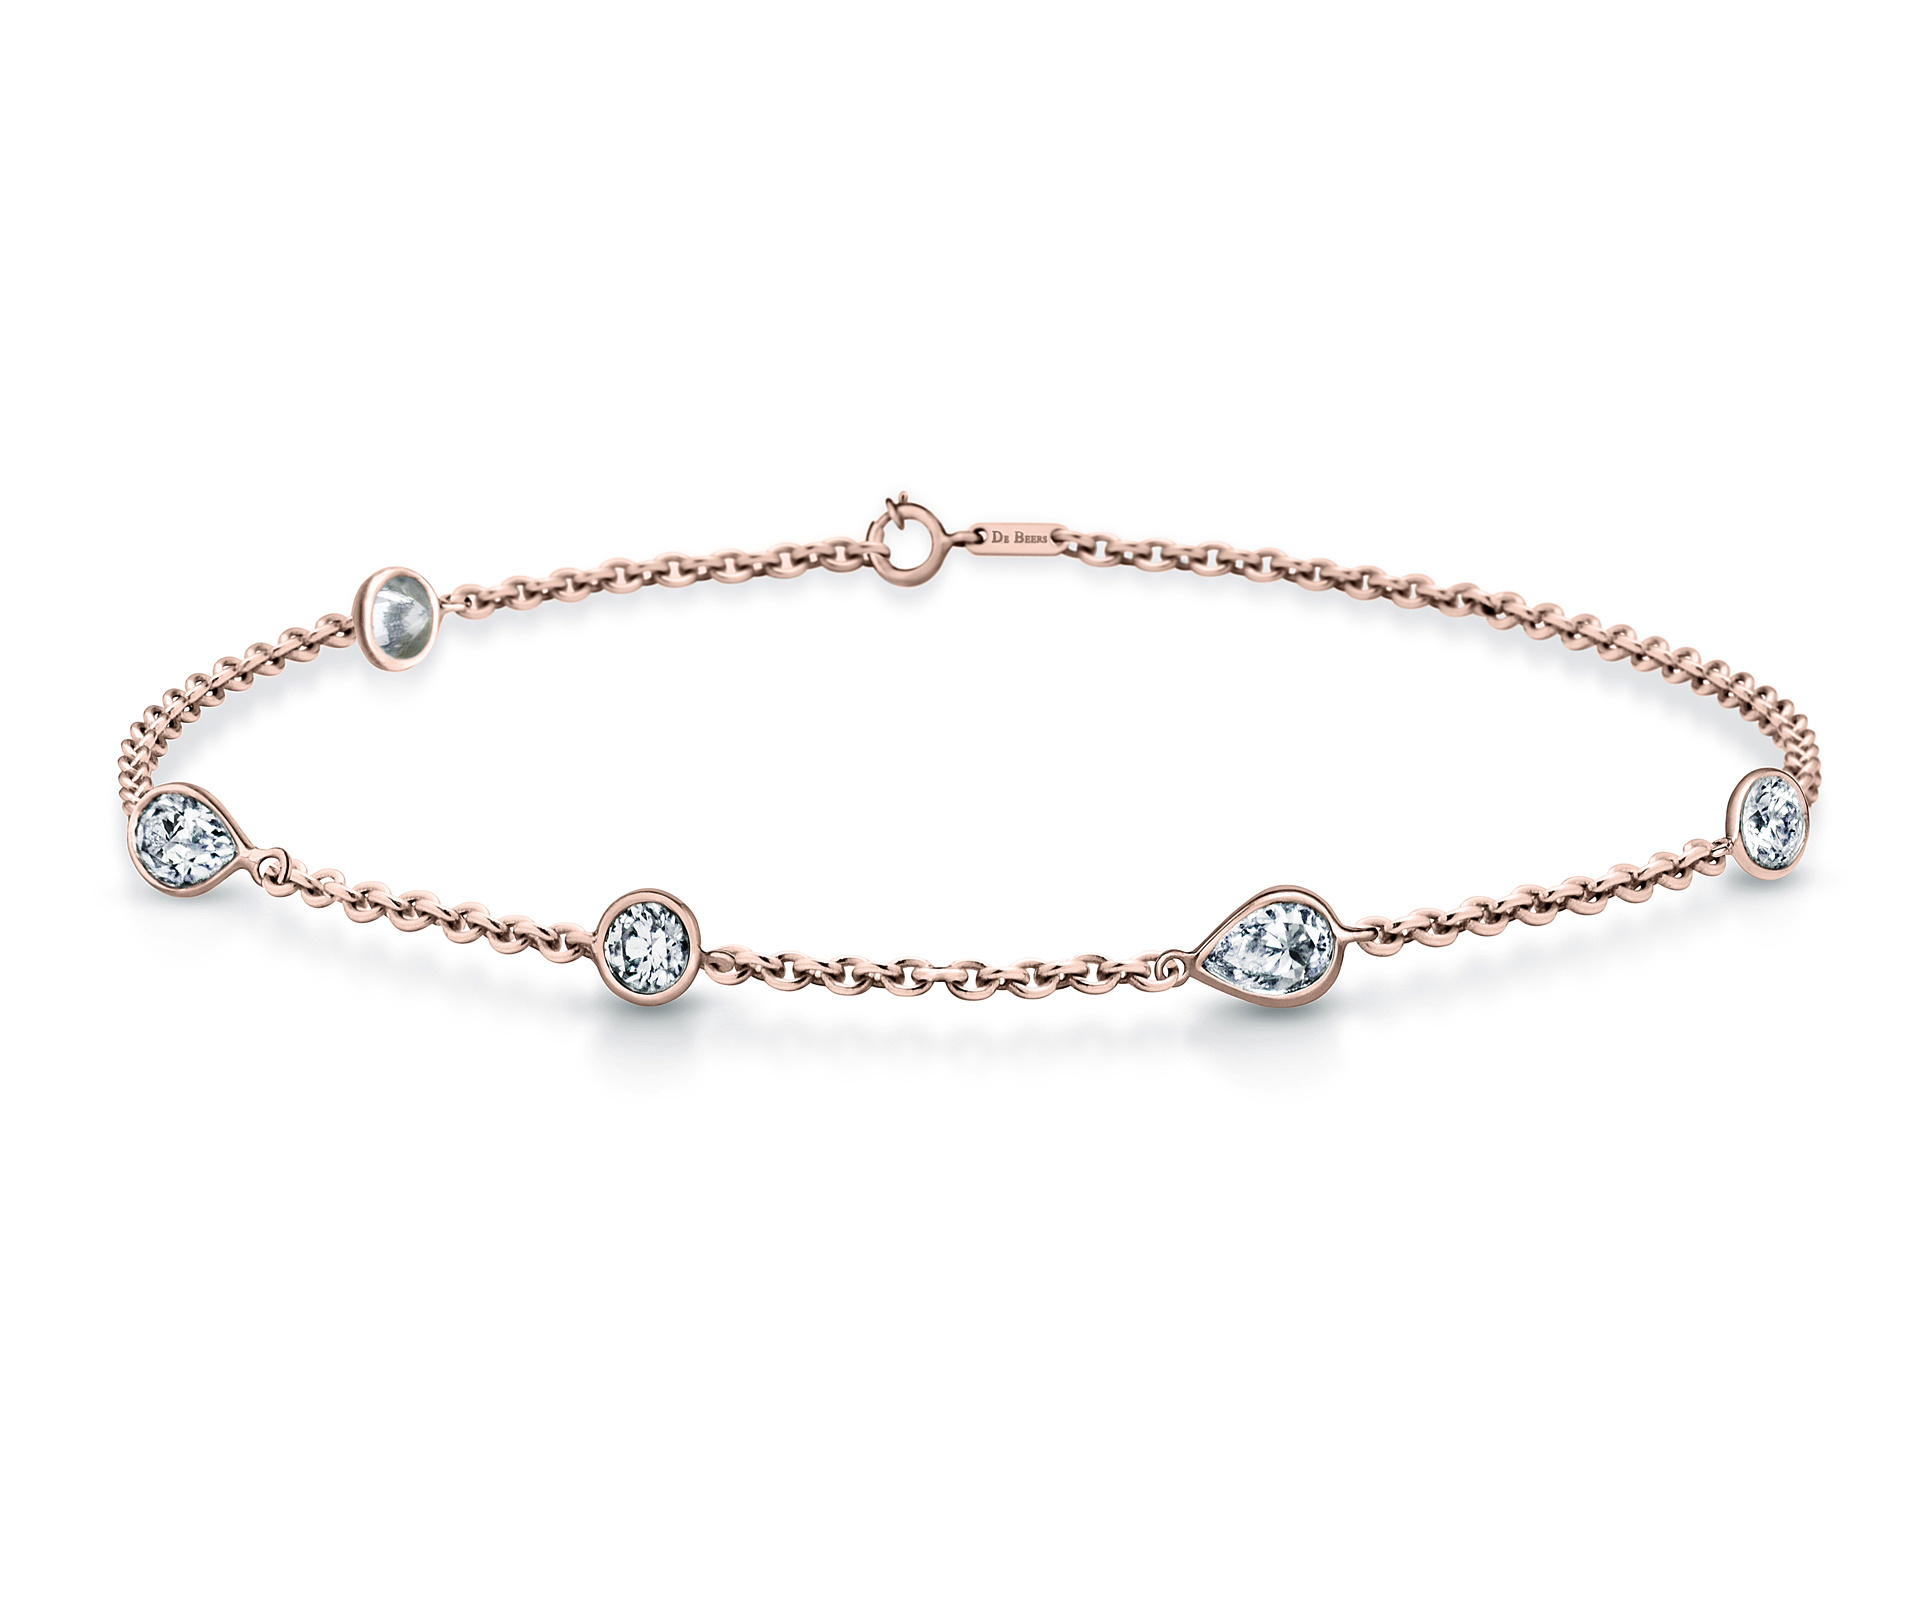 De Beers Clea Bracelet in Rose Gold